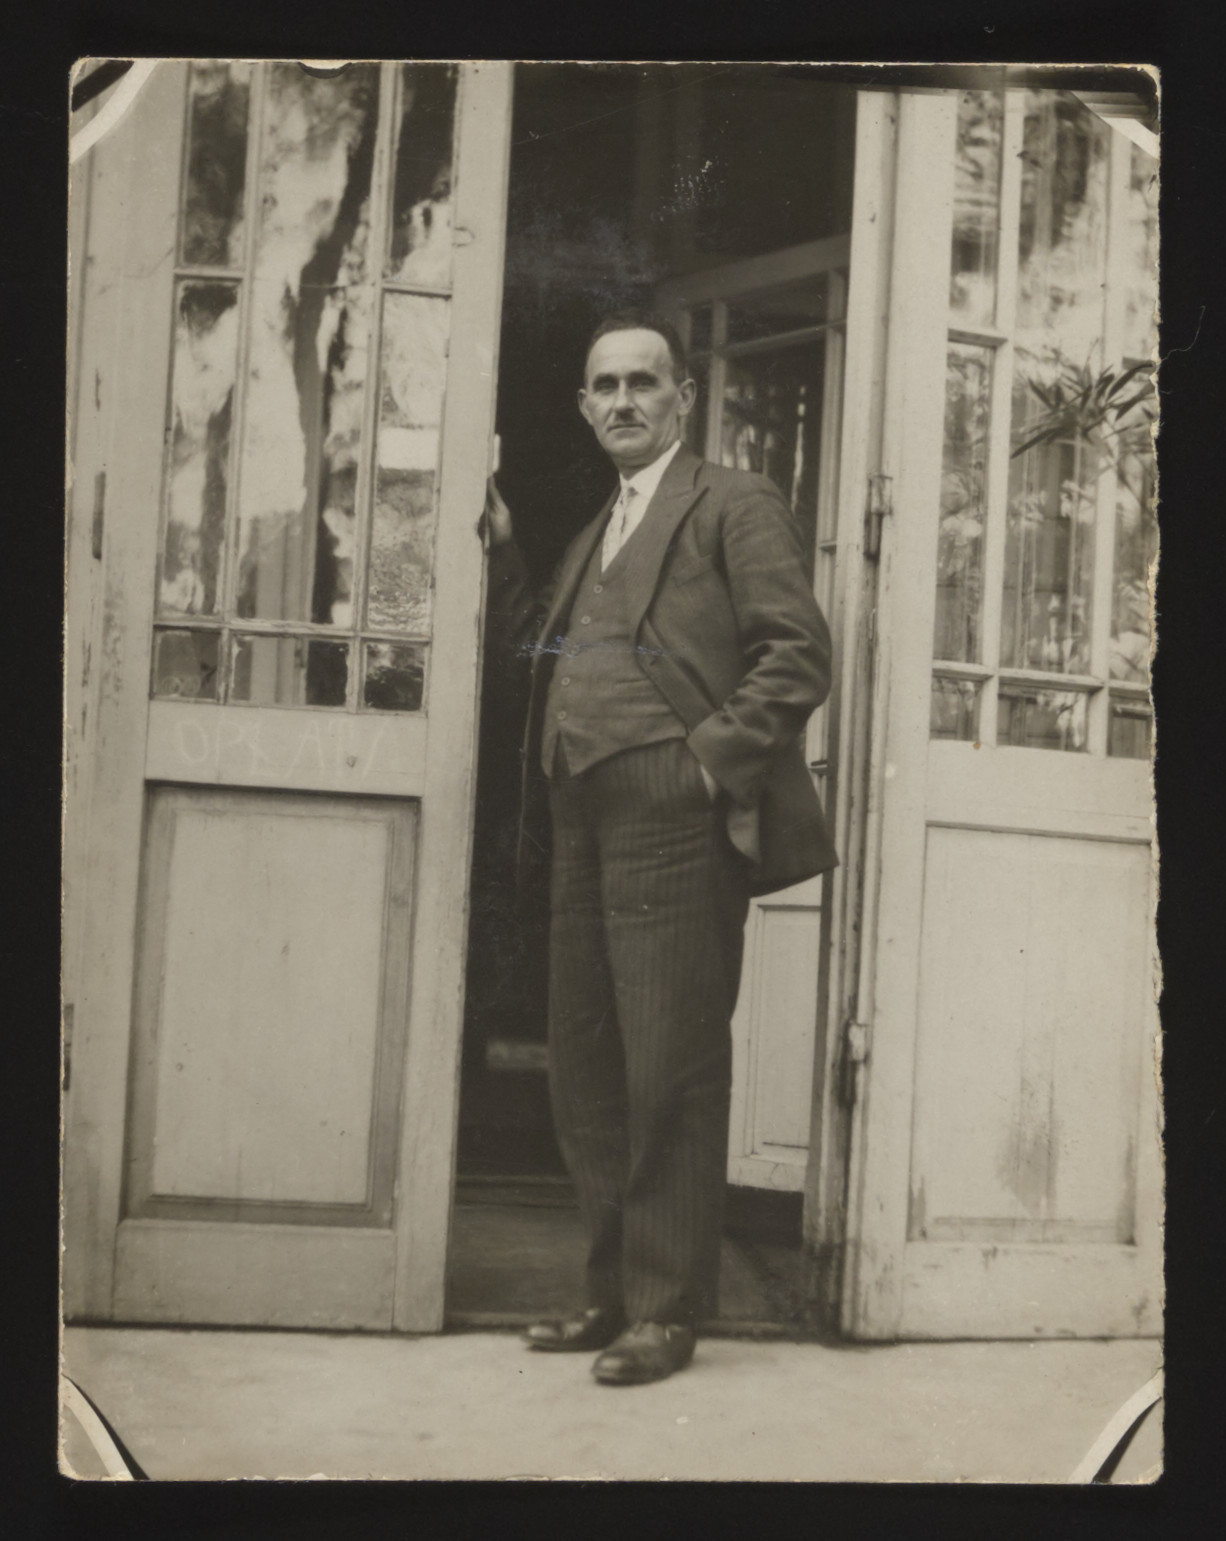 Zelig Szabason stands in the entryway to a TB sanatorium where he was staying.